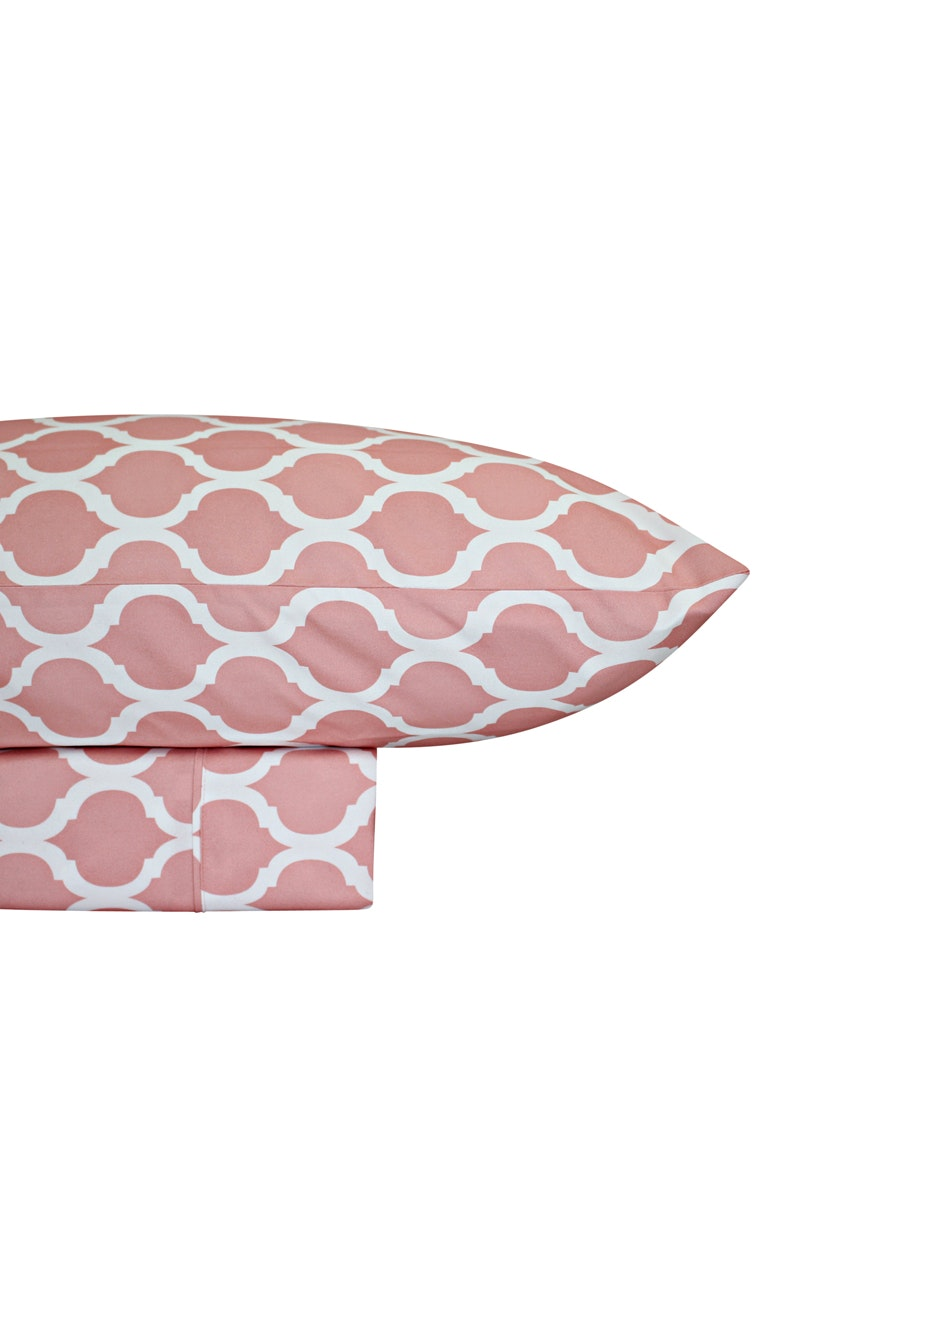 Thermal Flannel Sheet Set - Blossom Morocco - Queen Bed